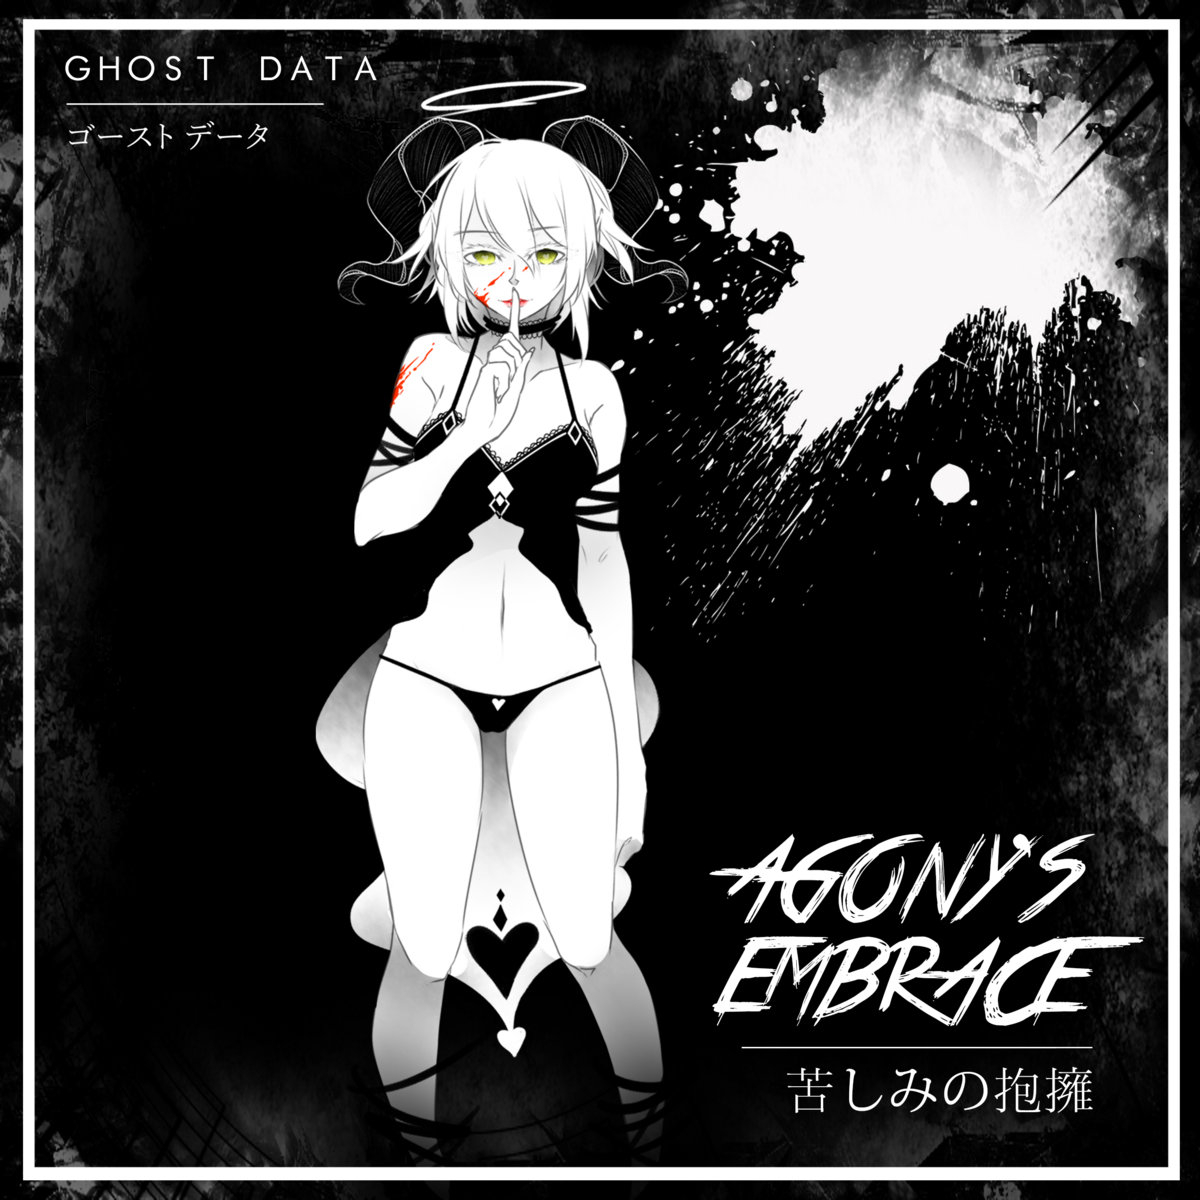 Ghost Data - Agony's Embrace